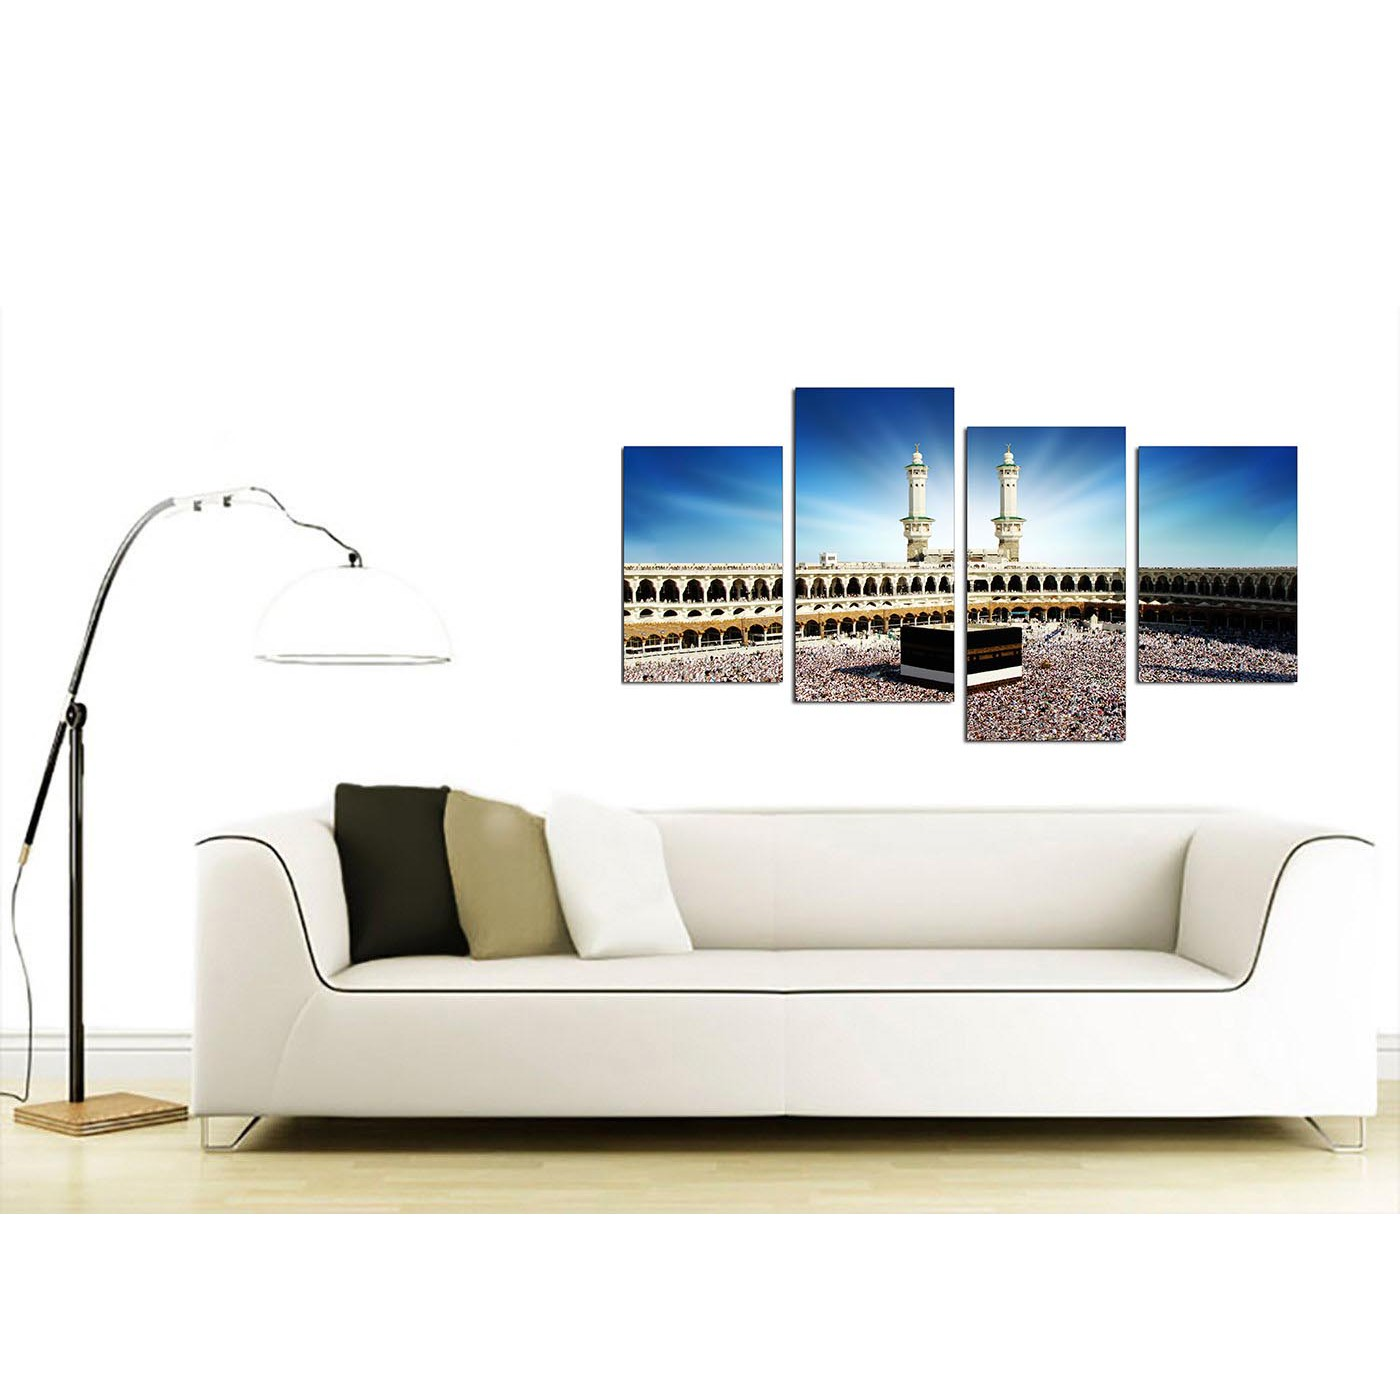 Display Gallery Item 1; Cheap Mecca u0026 Kaaba at Hajj Canvas Wall Art ...  sc 1 st  Wallfillers & Islamic Canvas Wall Art of Kaaba Hajj in Mecca for Muslims - Set of 4